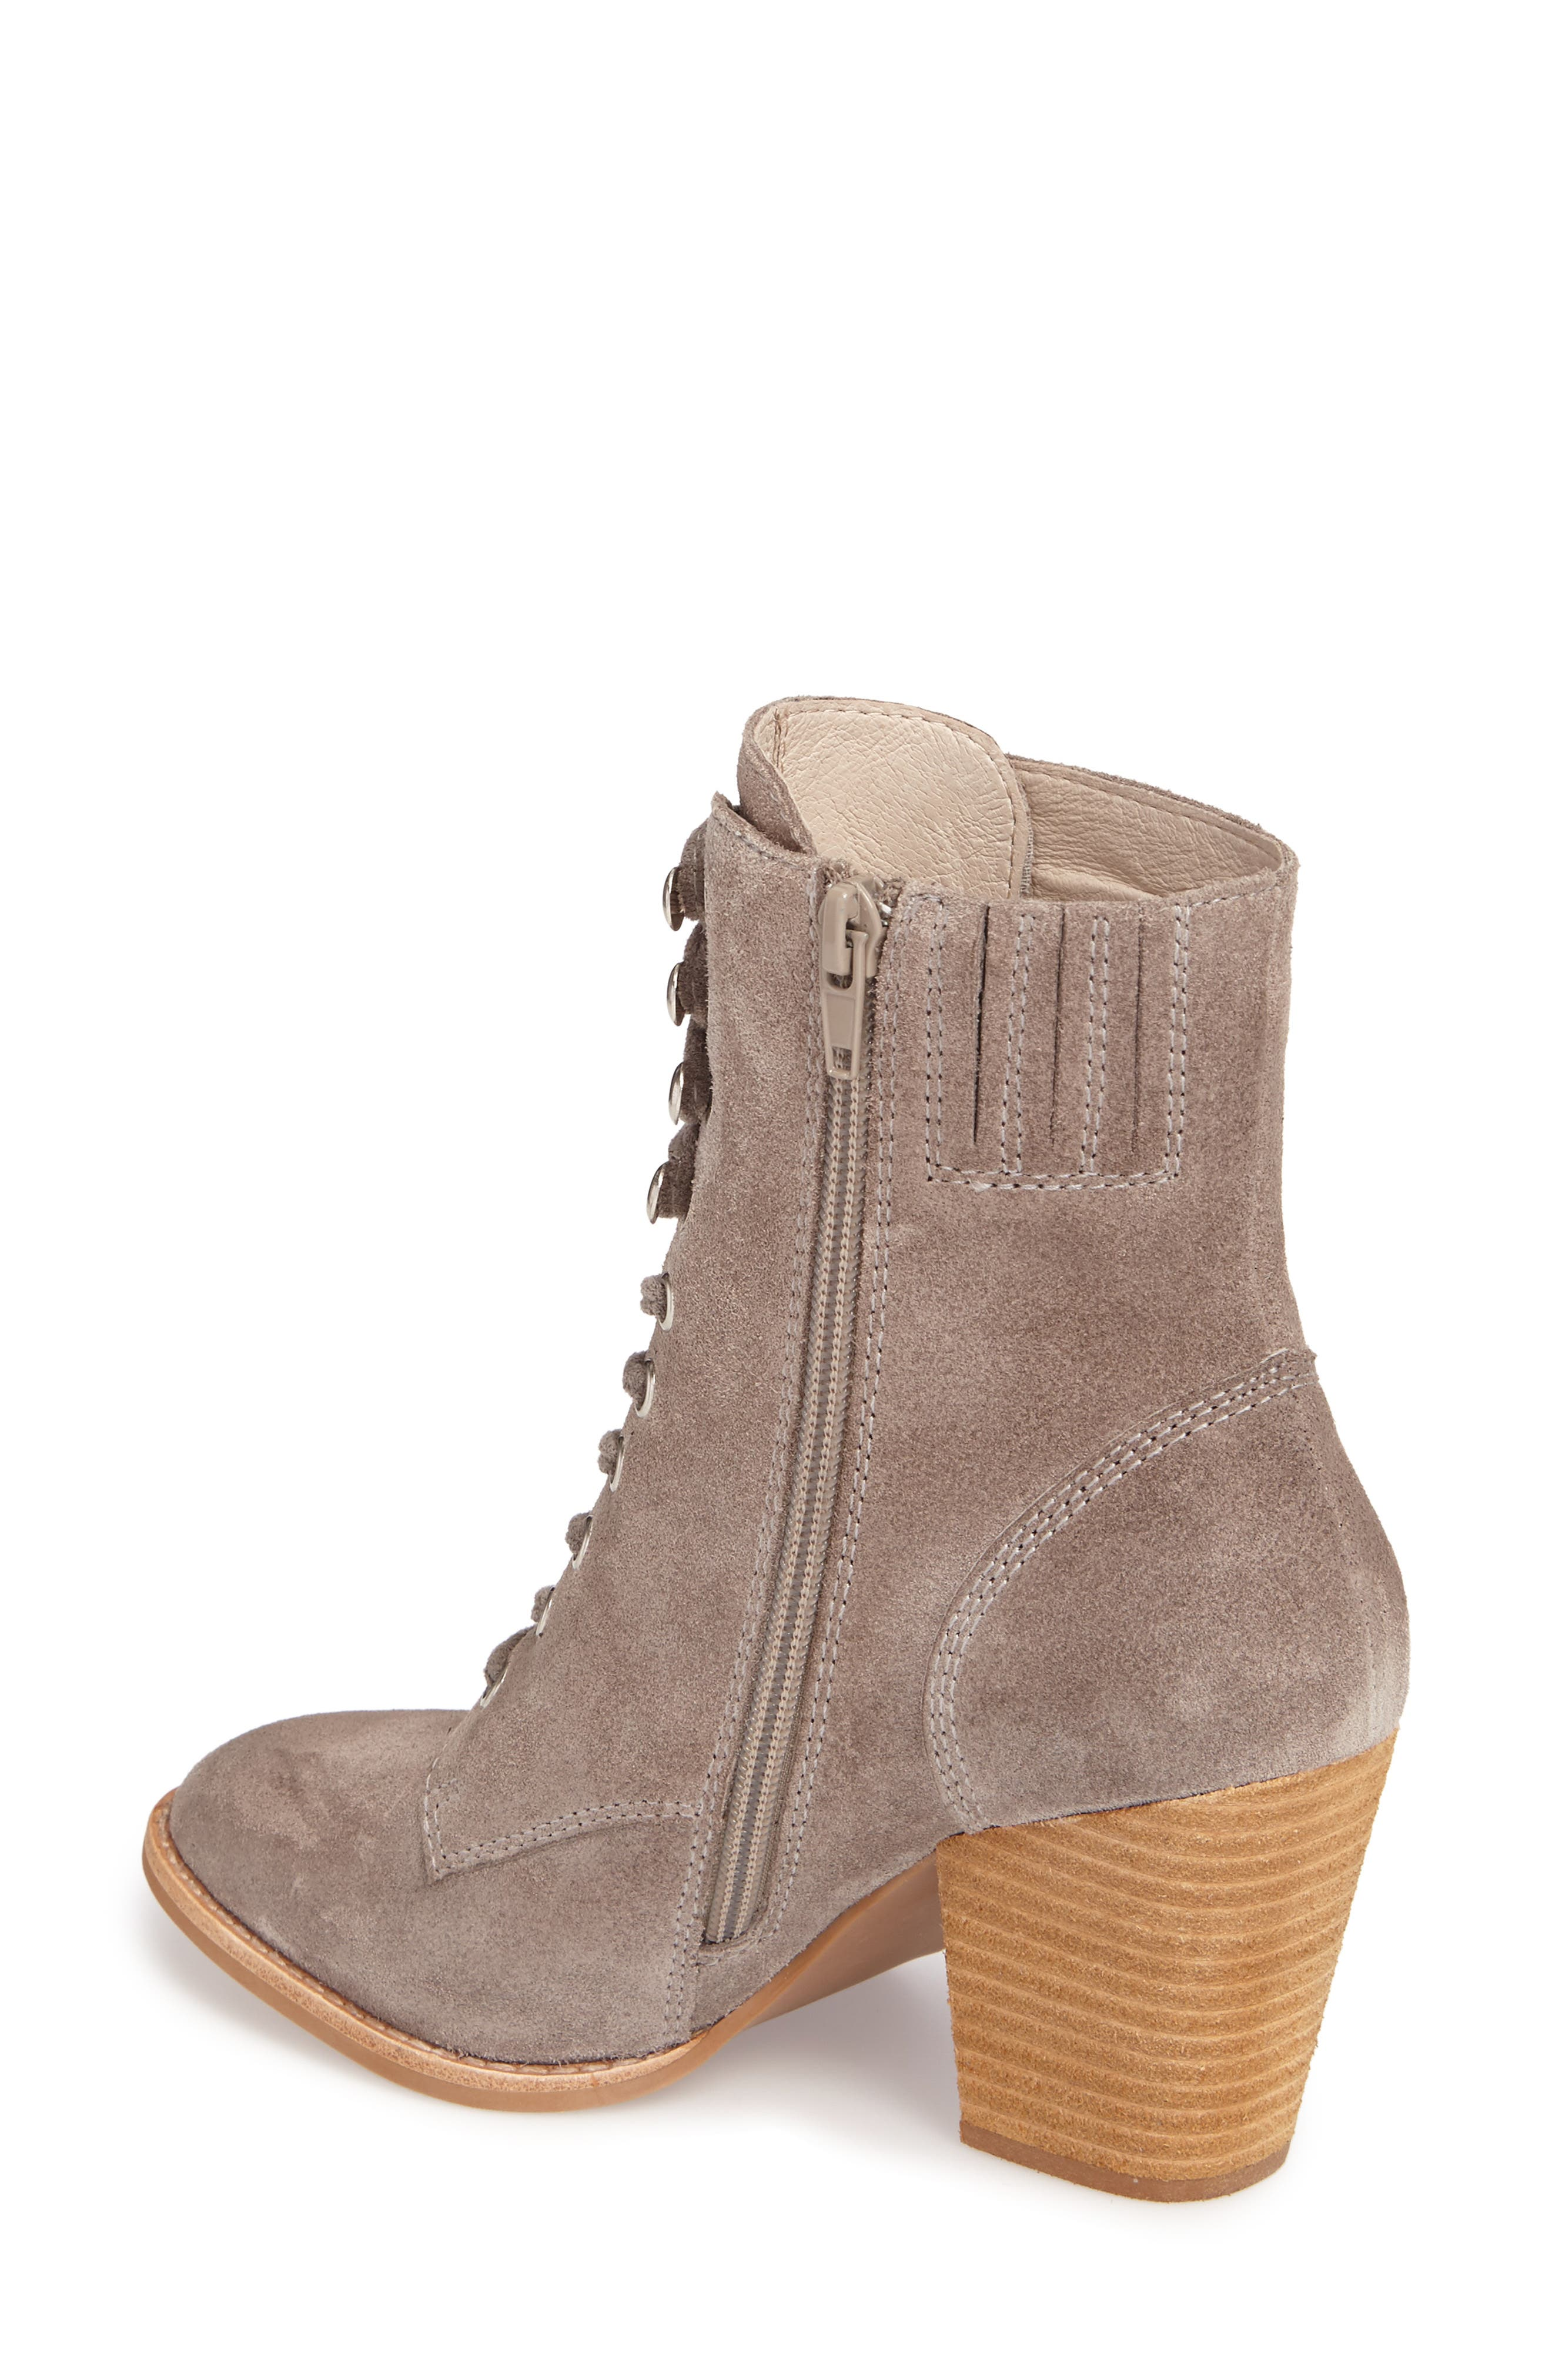 Elman Bootie,                             Alternate thumbnail 2, color,                             Taupe Suede